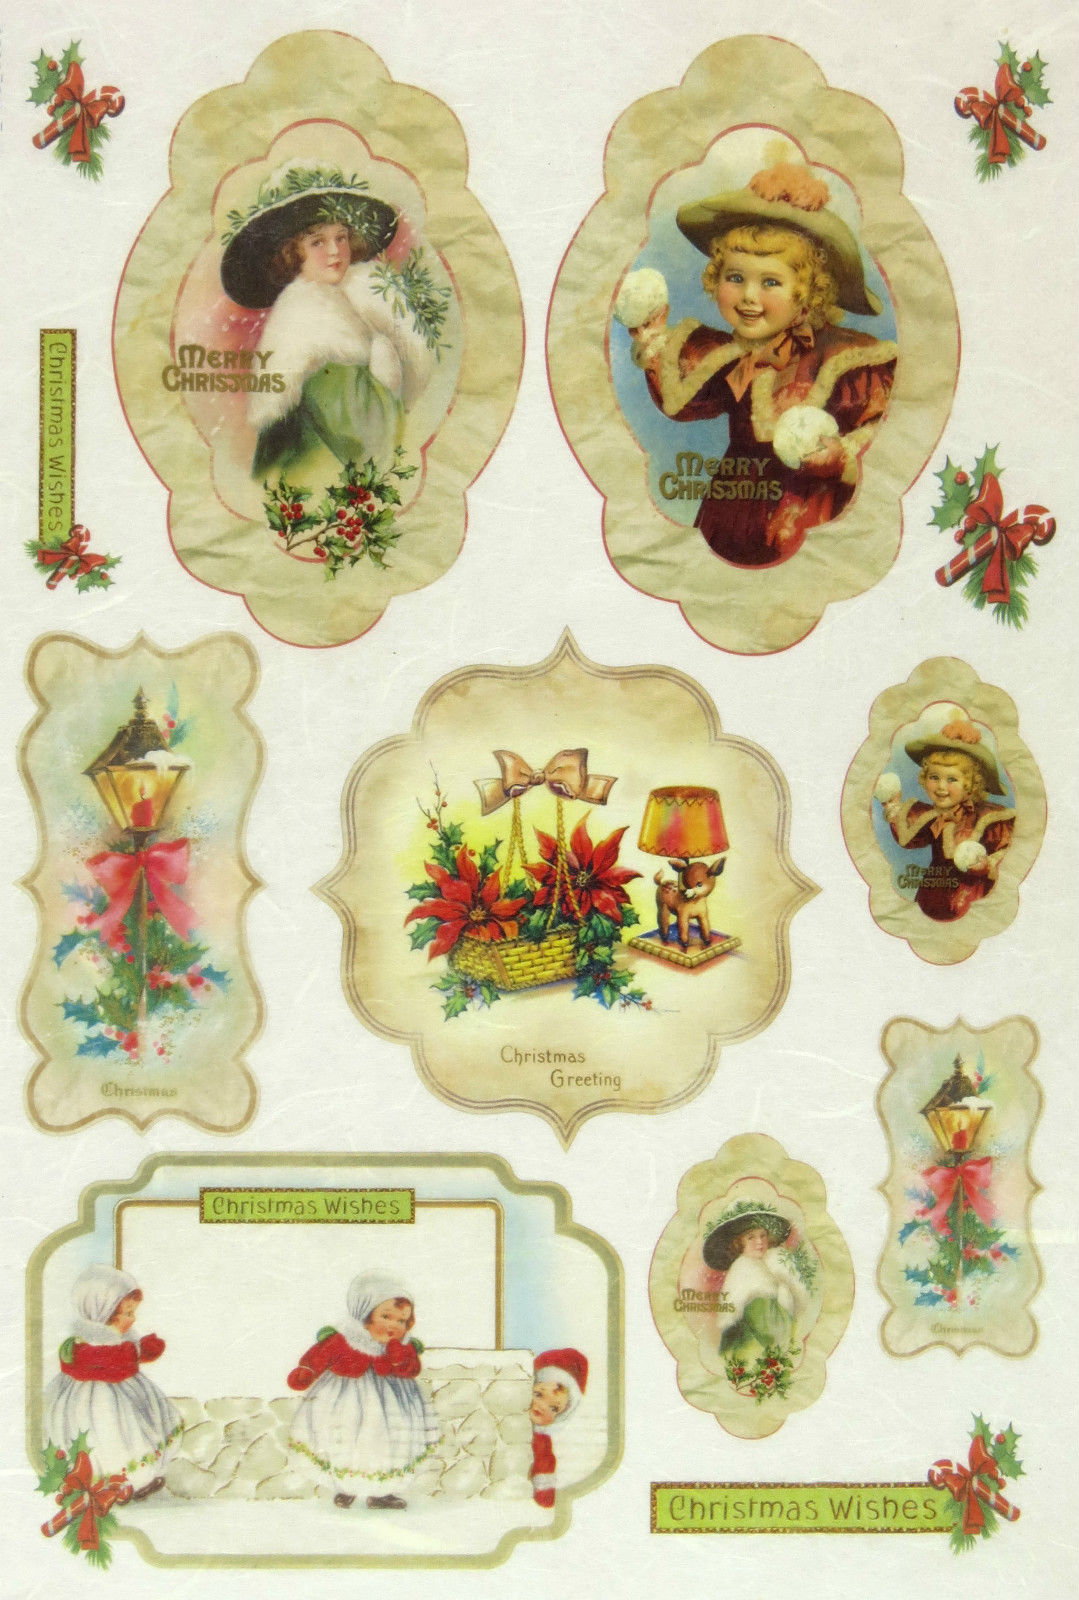 Scrapbooking Sheet Christmas Wishes Rice Paper for Decoupage